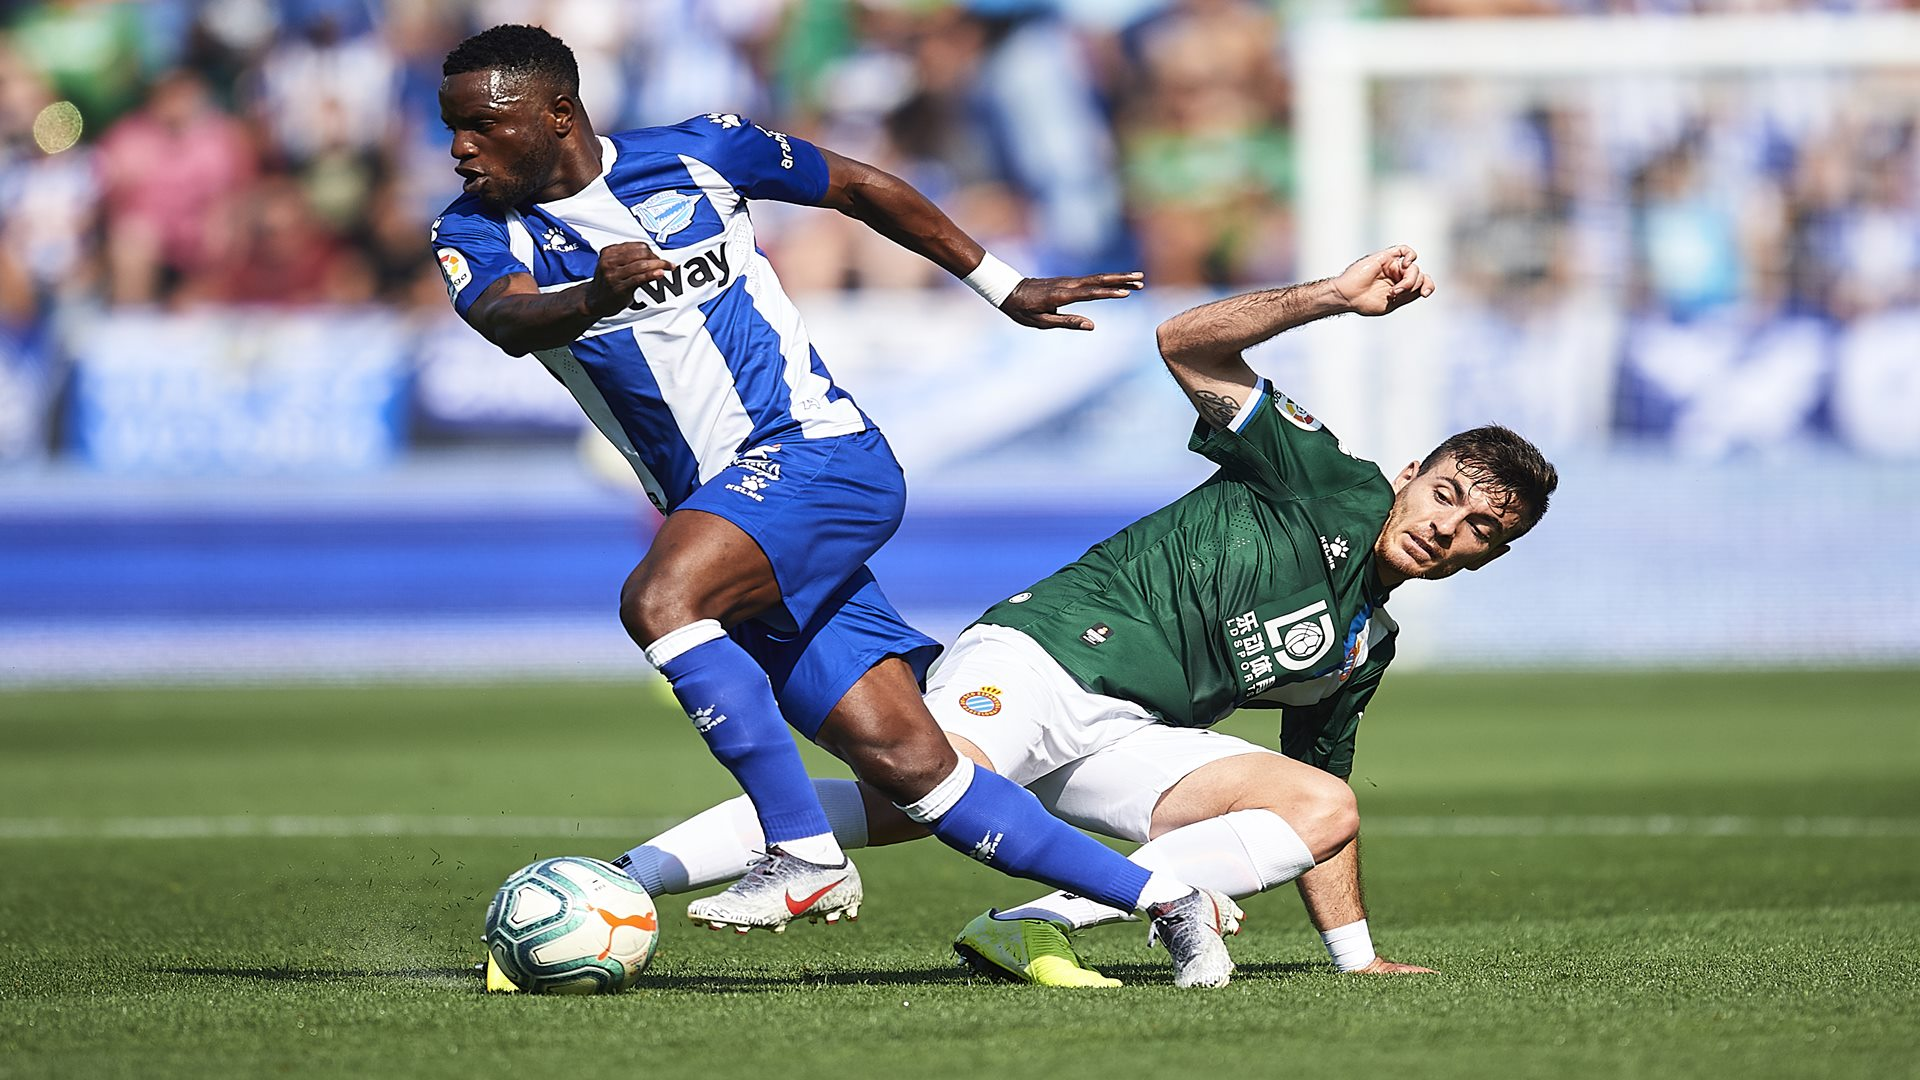 Ghana and Deportivo Alaves midfielder Wakaso set for treatment due to hand  injury | Goal.com